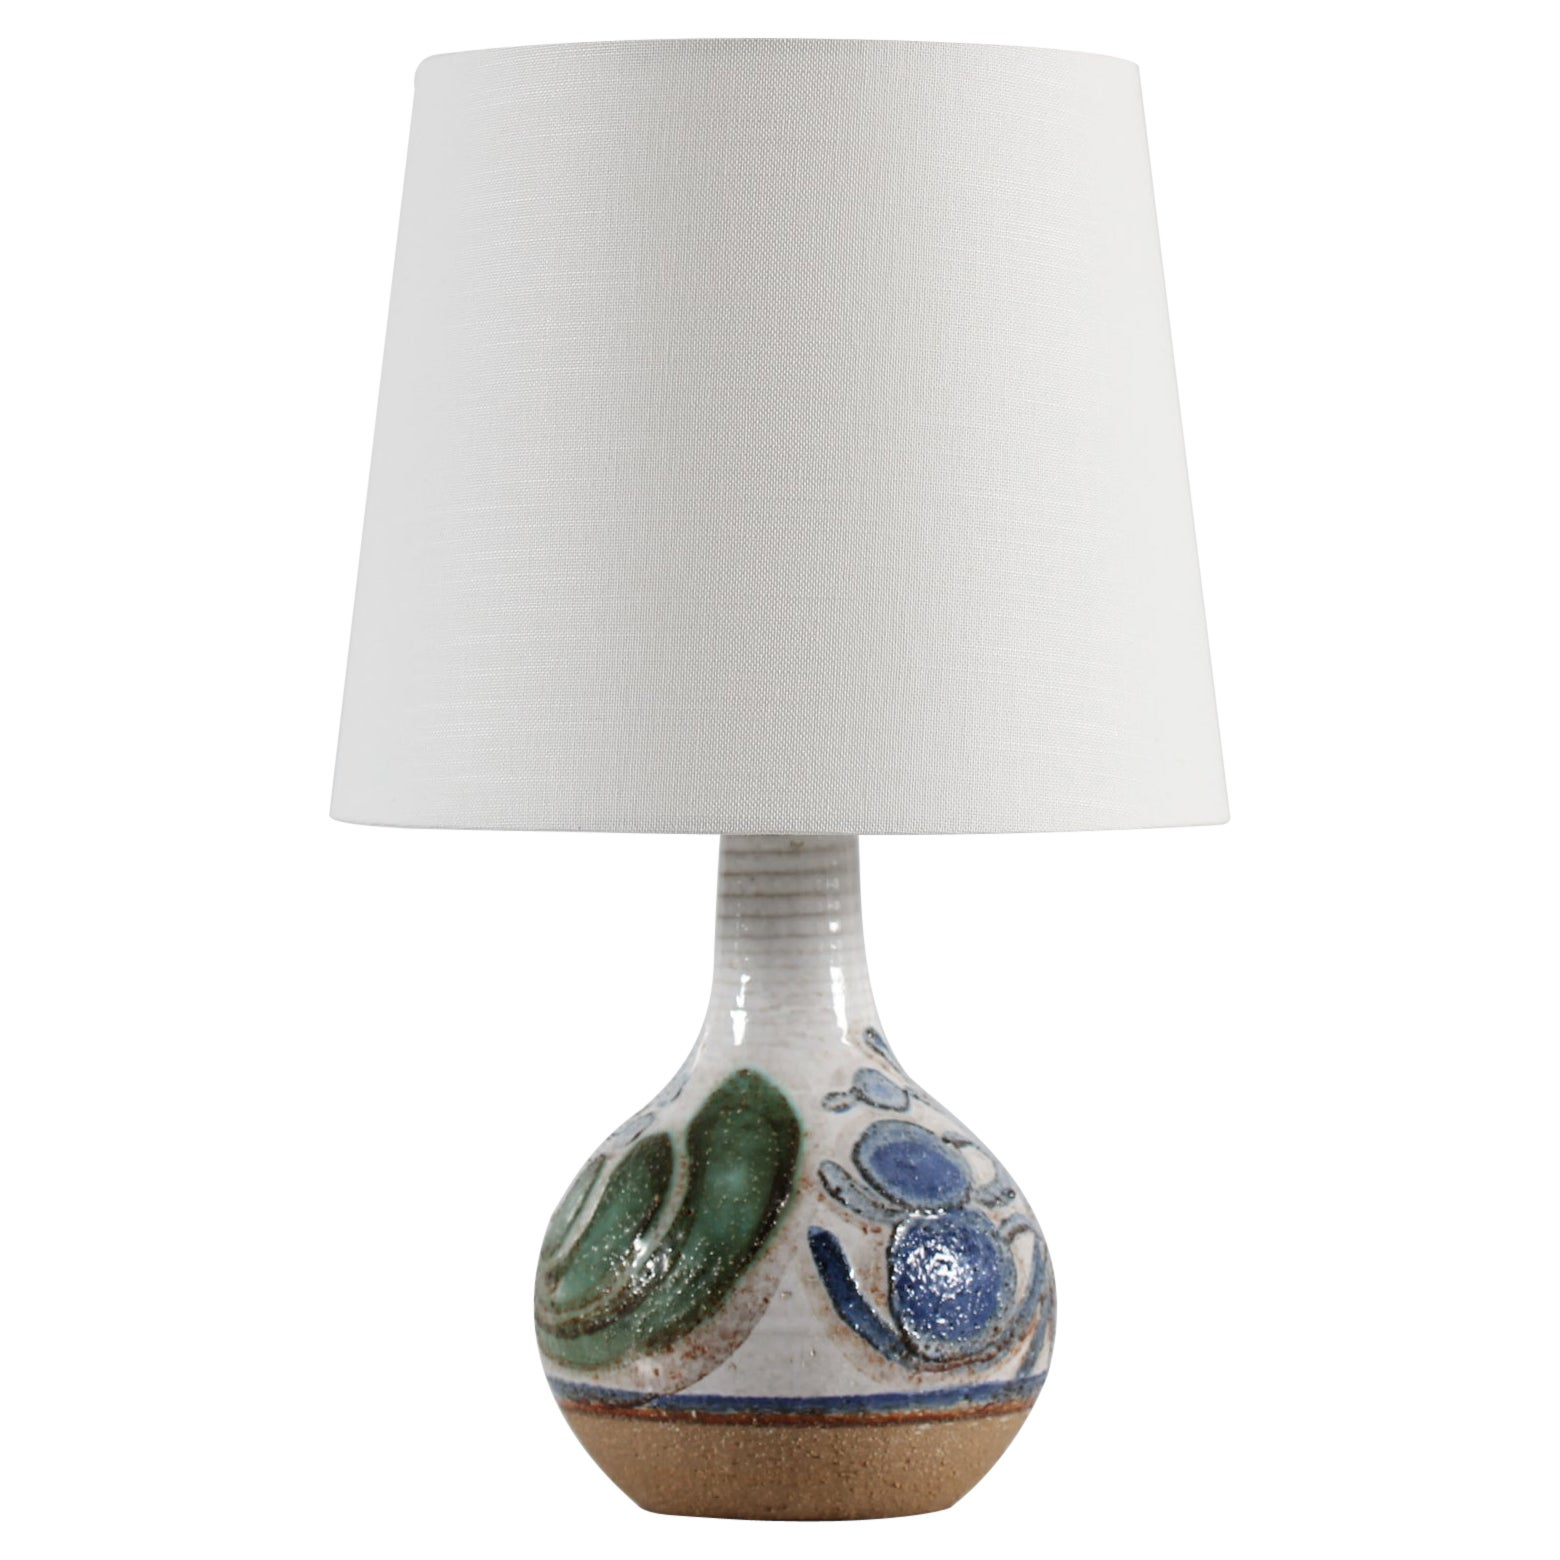 Noomi Backhausen Rustic Søholm Stoneware Table Lamp with New Shade Denmark 1970s